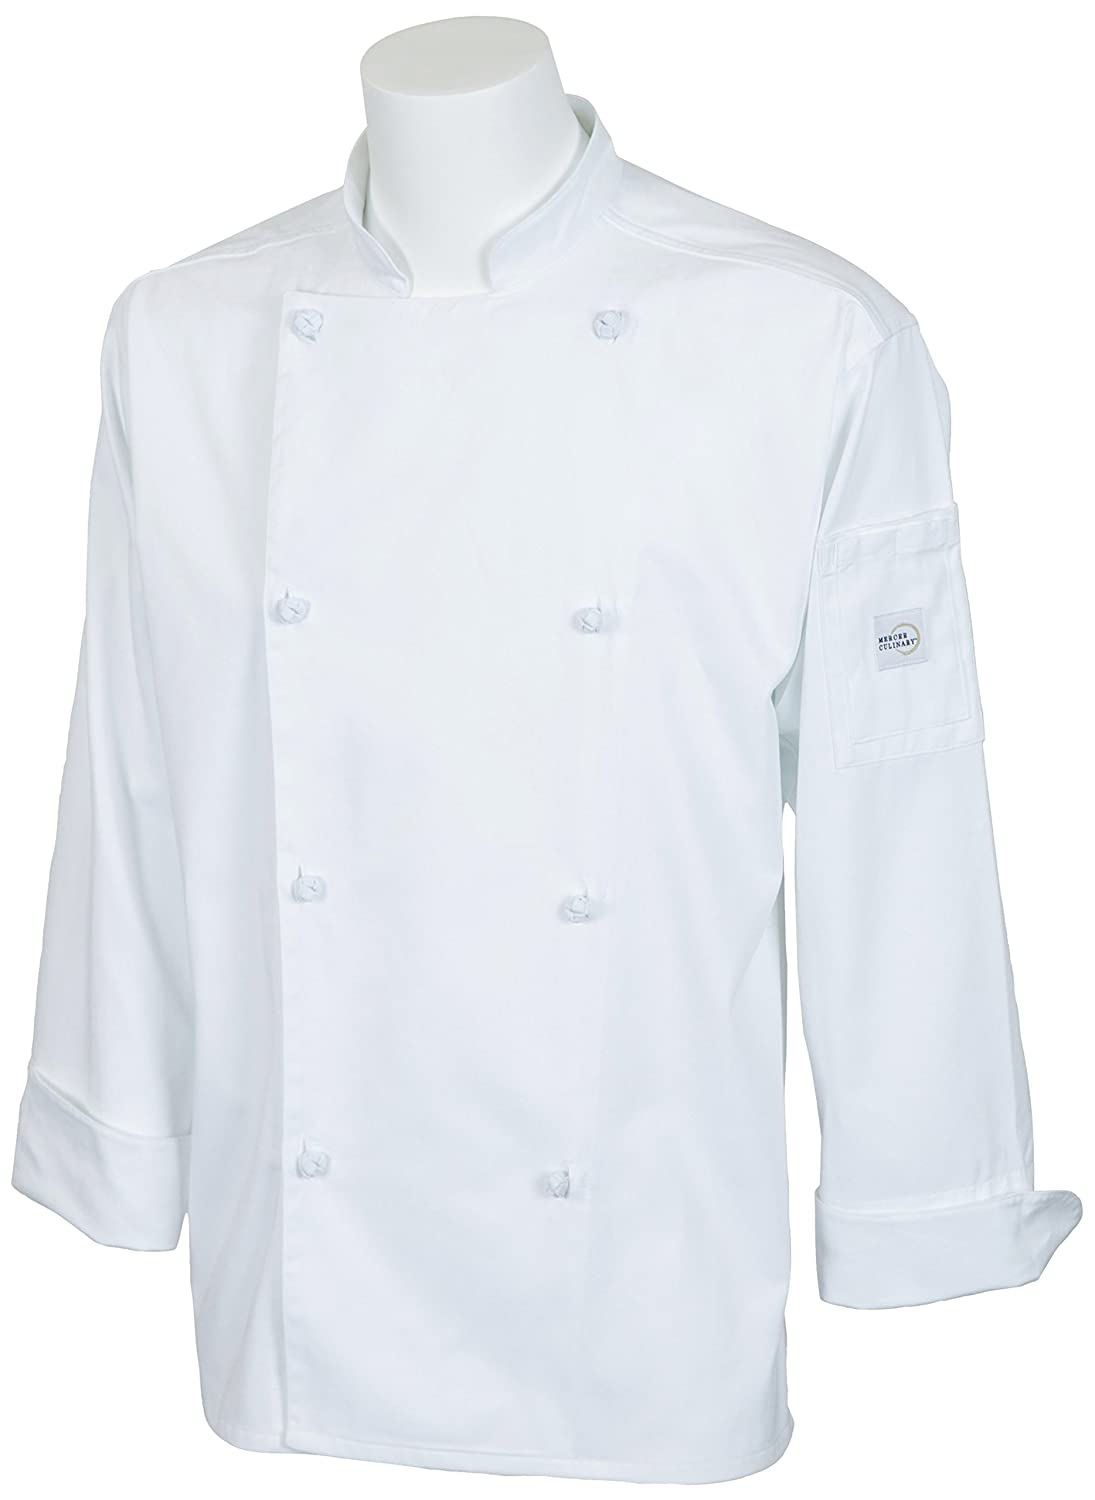 Mercer Culinary M61020WH3X Genesis Unisex Jacket with Cloth Knot Buttons, 3X-Large, White